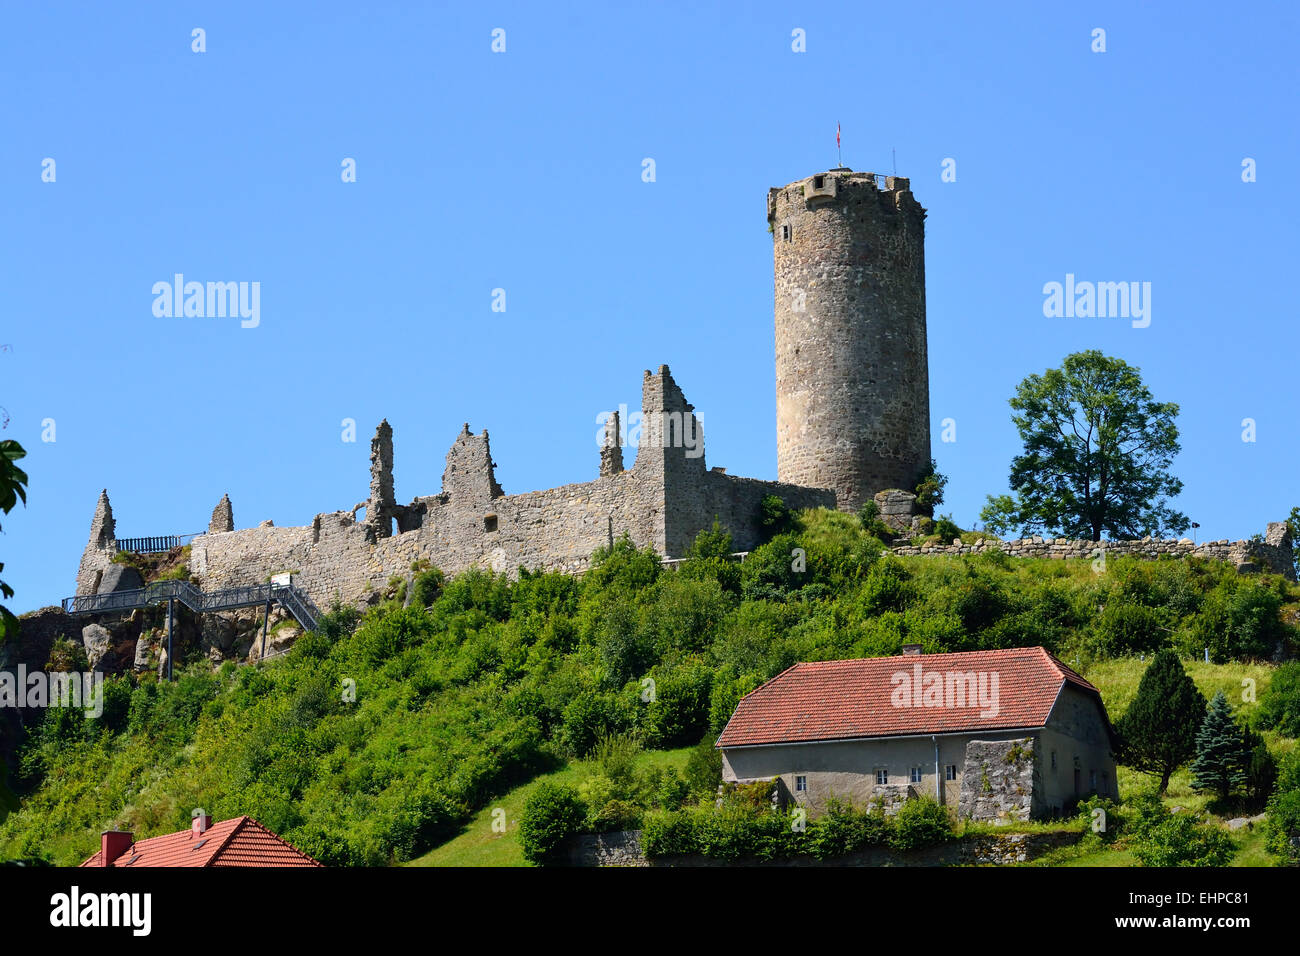 Ruined castle on the hill - Stock Image